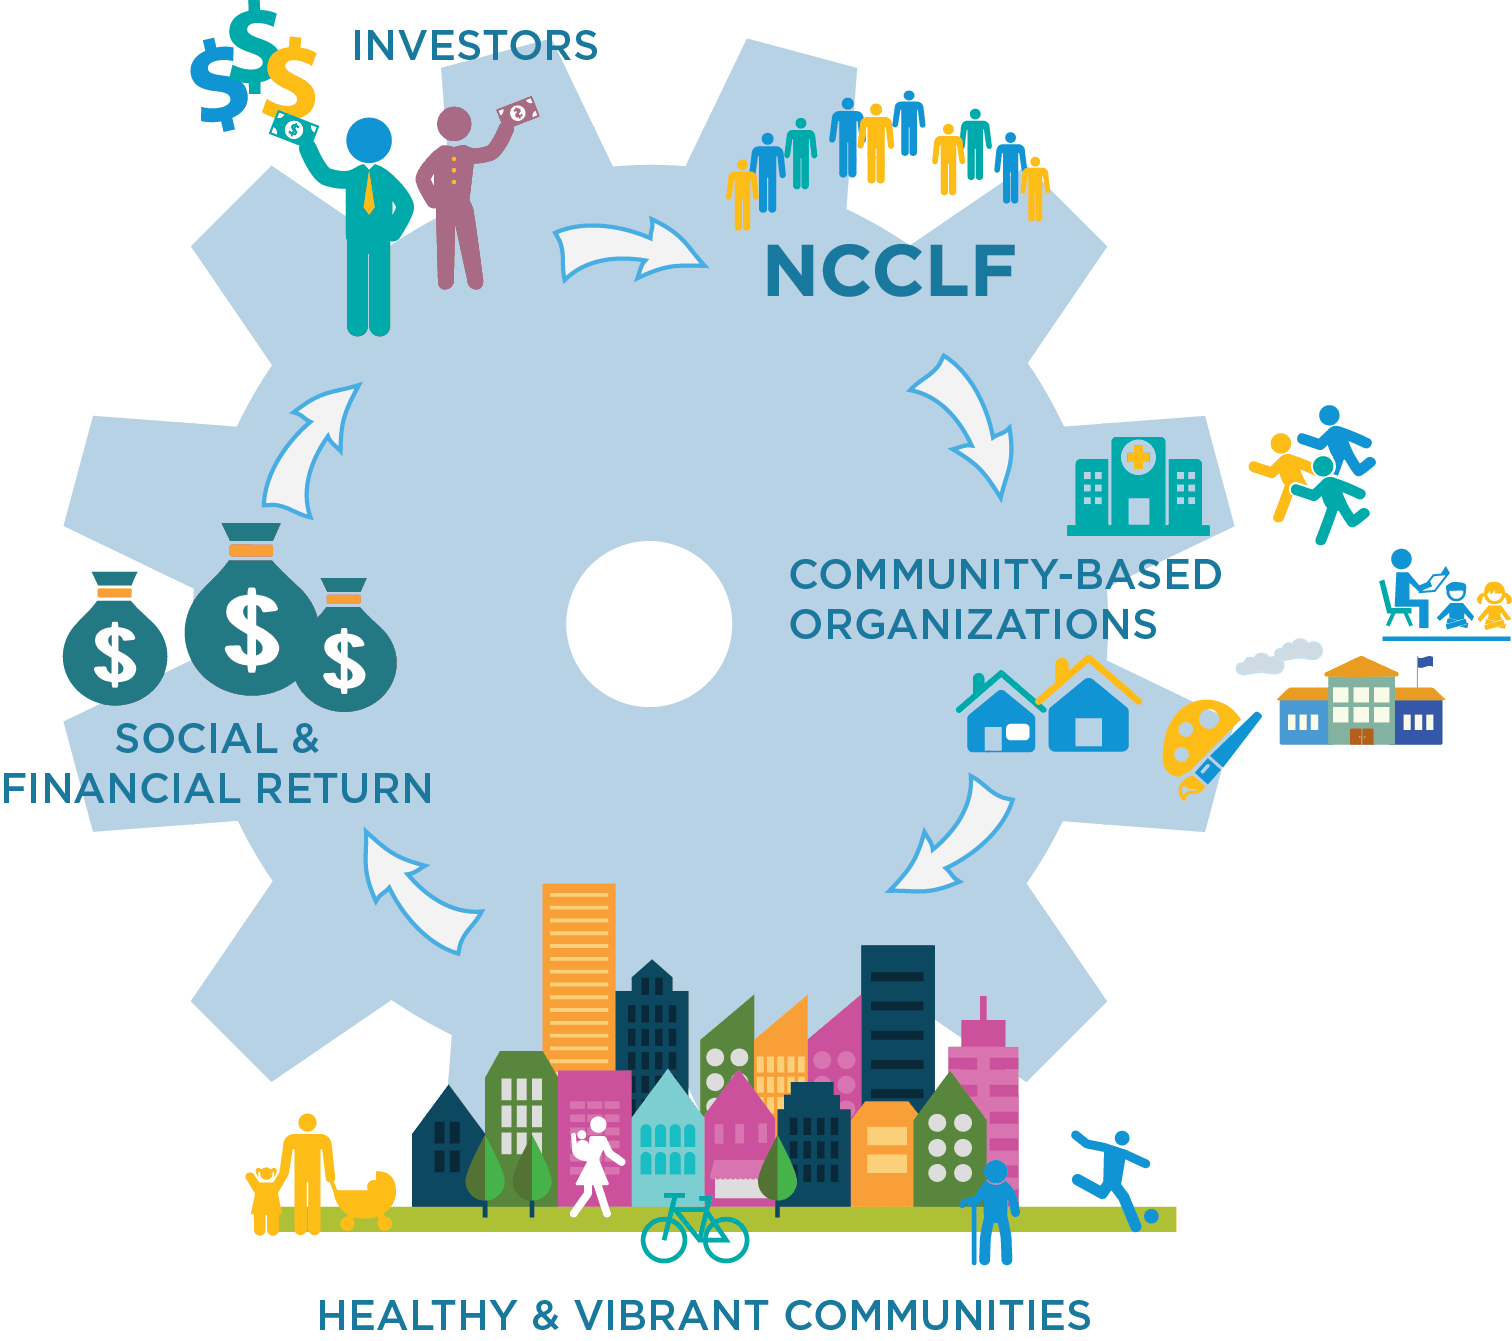 investor-lending-cycle-san-francisco-bay-area-business-ncclf